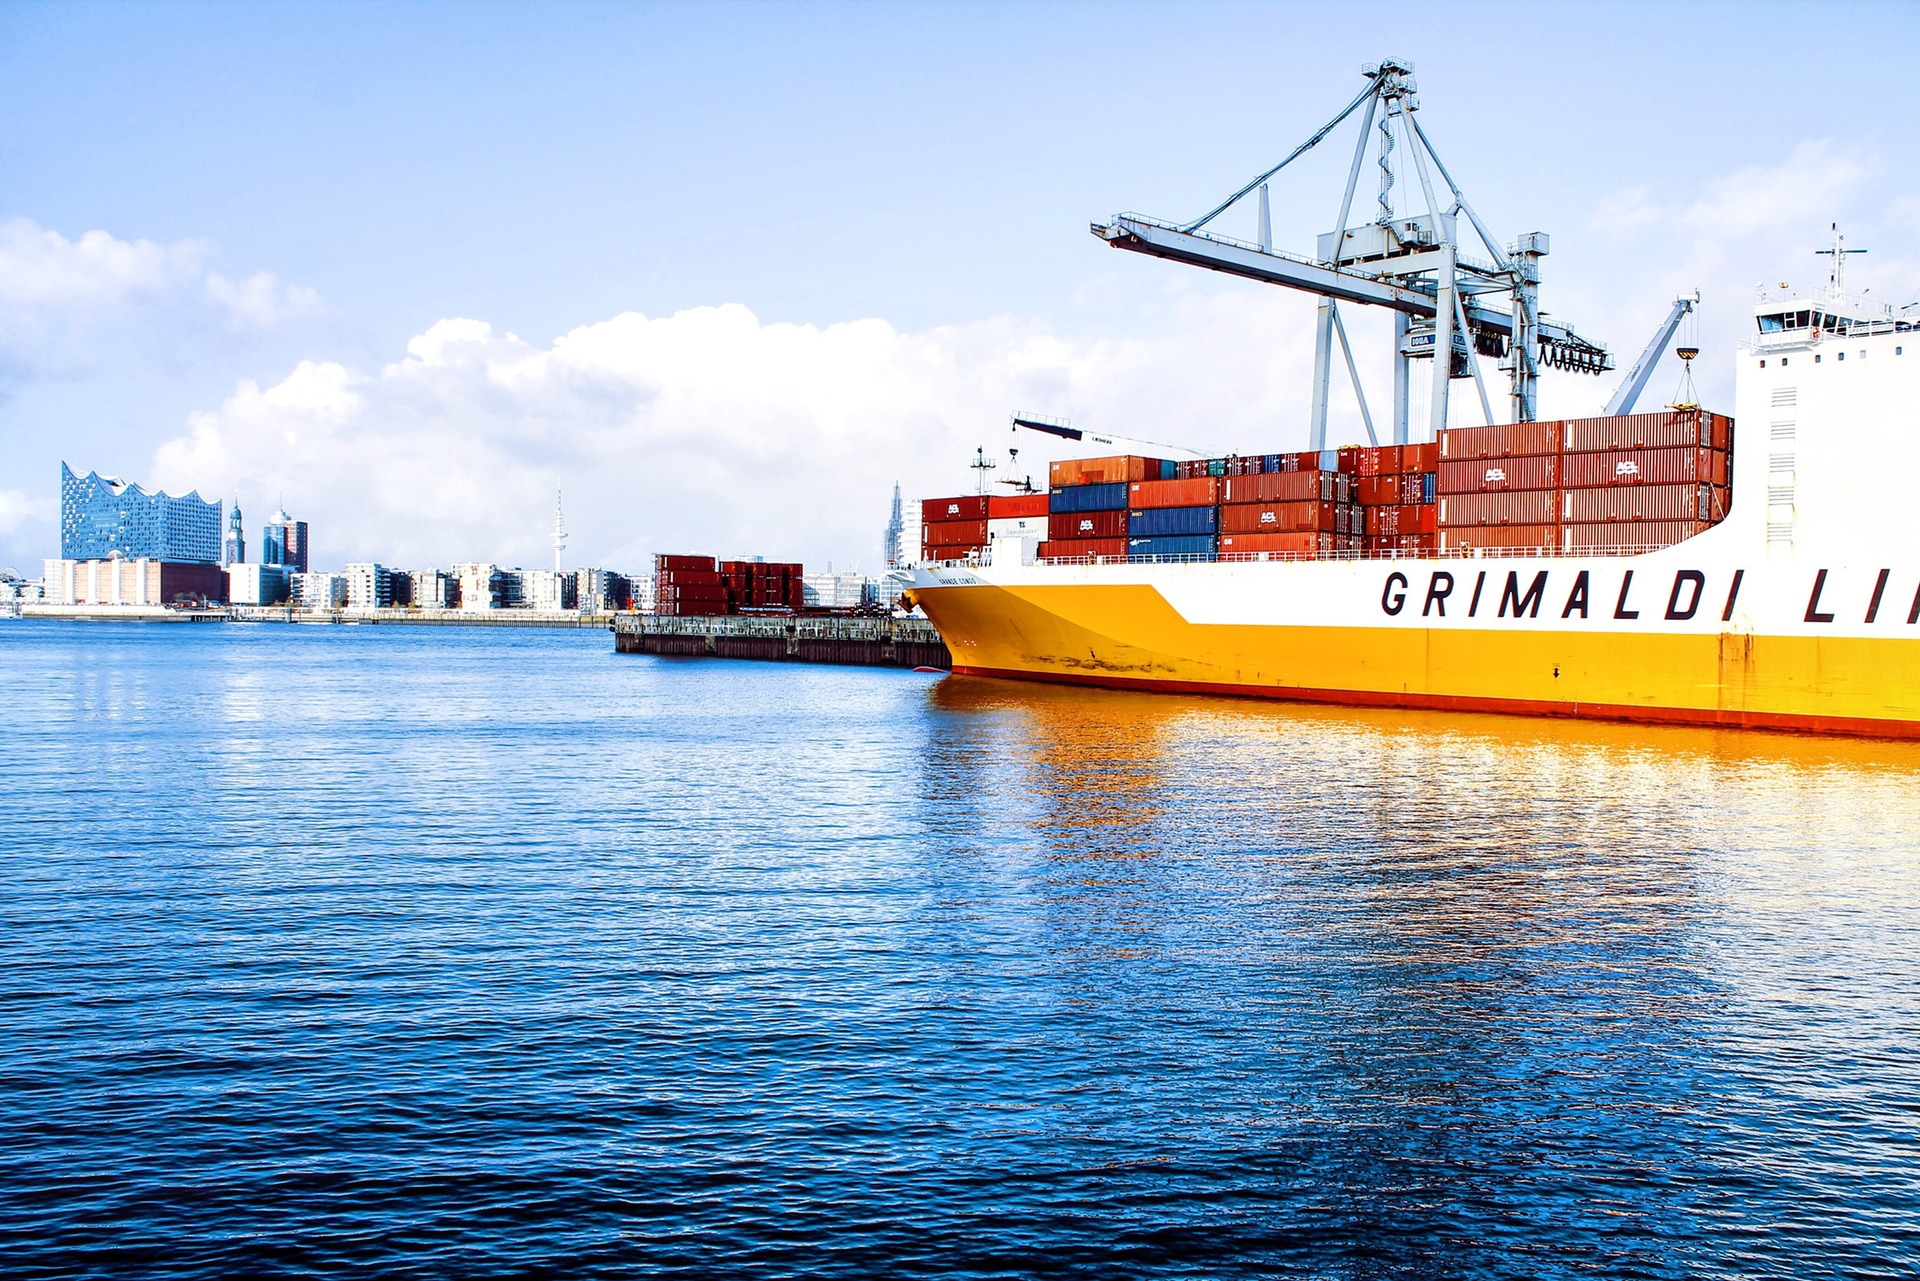 A FRAMEWORK FOR STUDYING THE IMPORTANCE OF OPEN INNOVATION IN THE MARITIME INDUSTRY